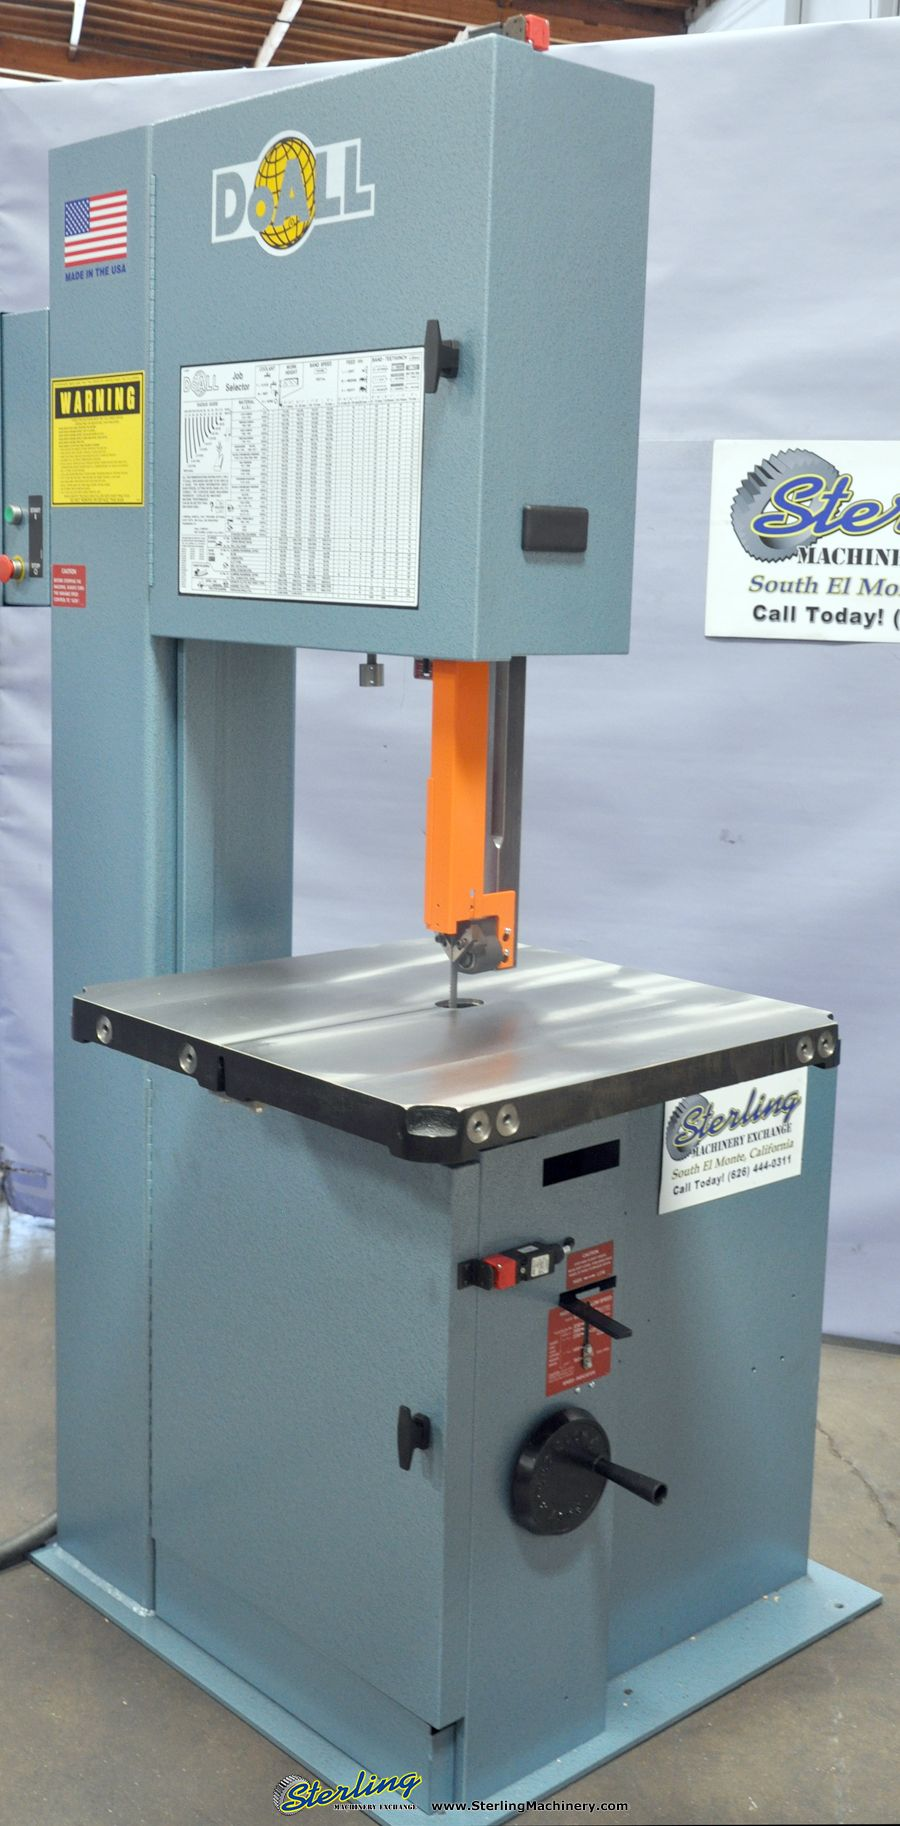 20 brand new doall vertical contour bandsaw mdl 2013 v high low transmission made in the u s a sm2013v [ 900 x 1826 Pixel ]